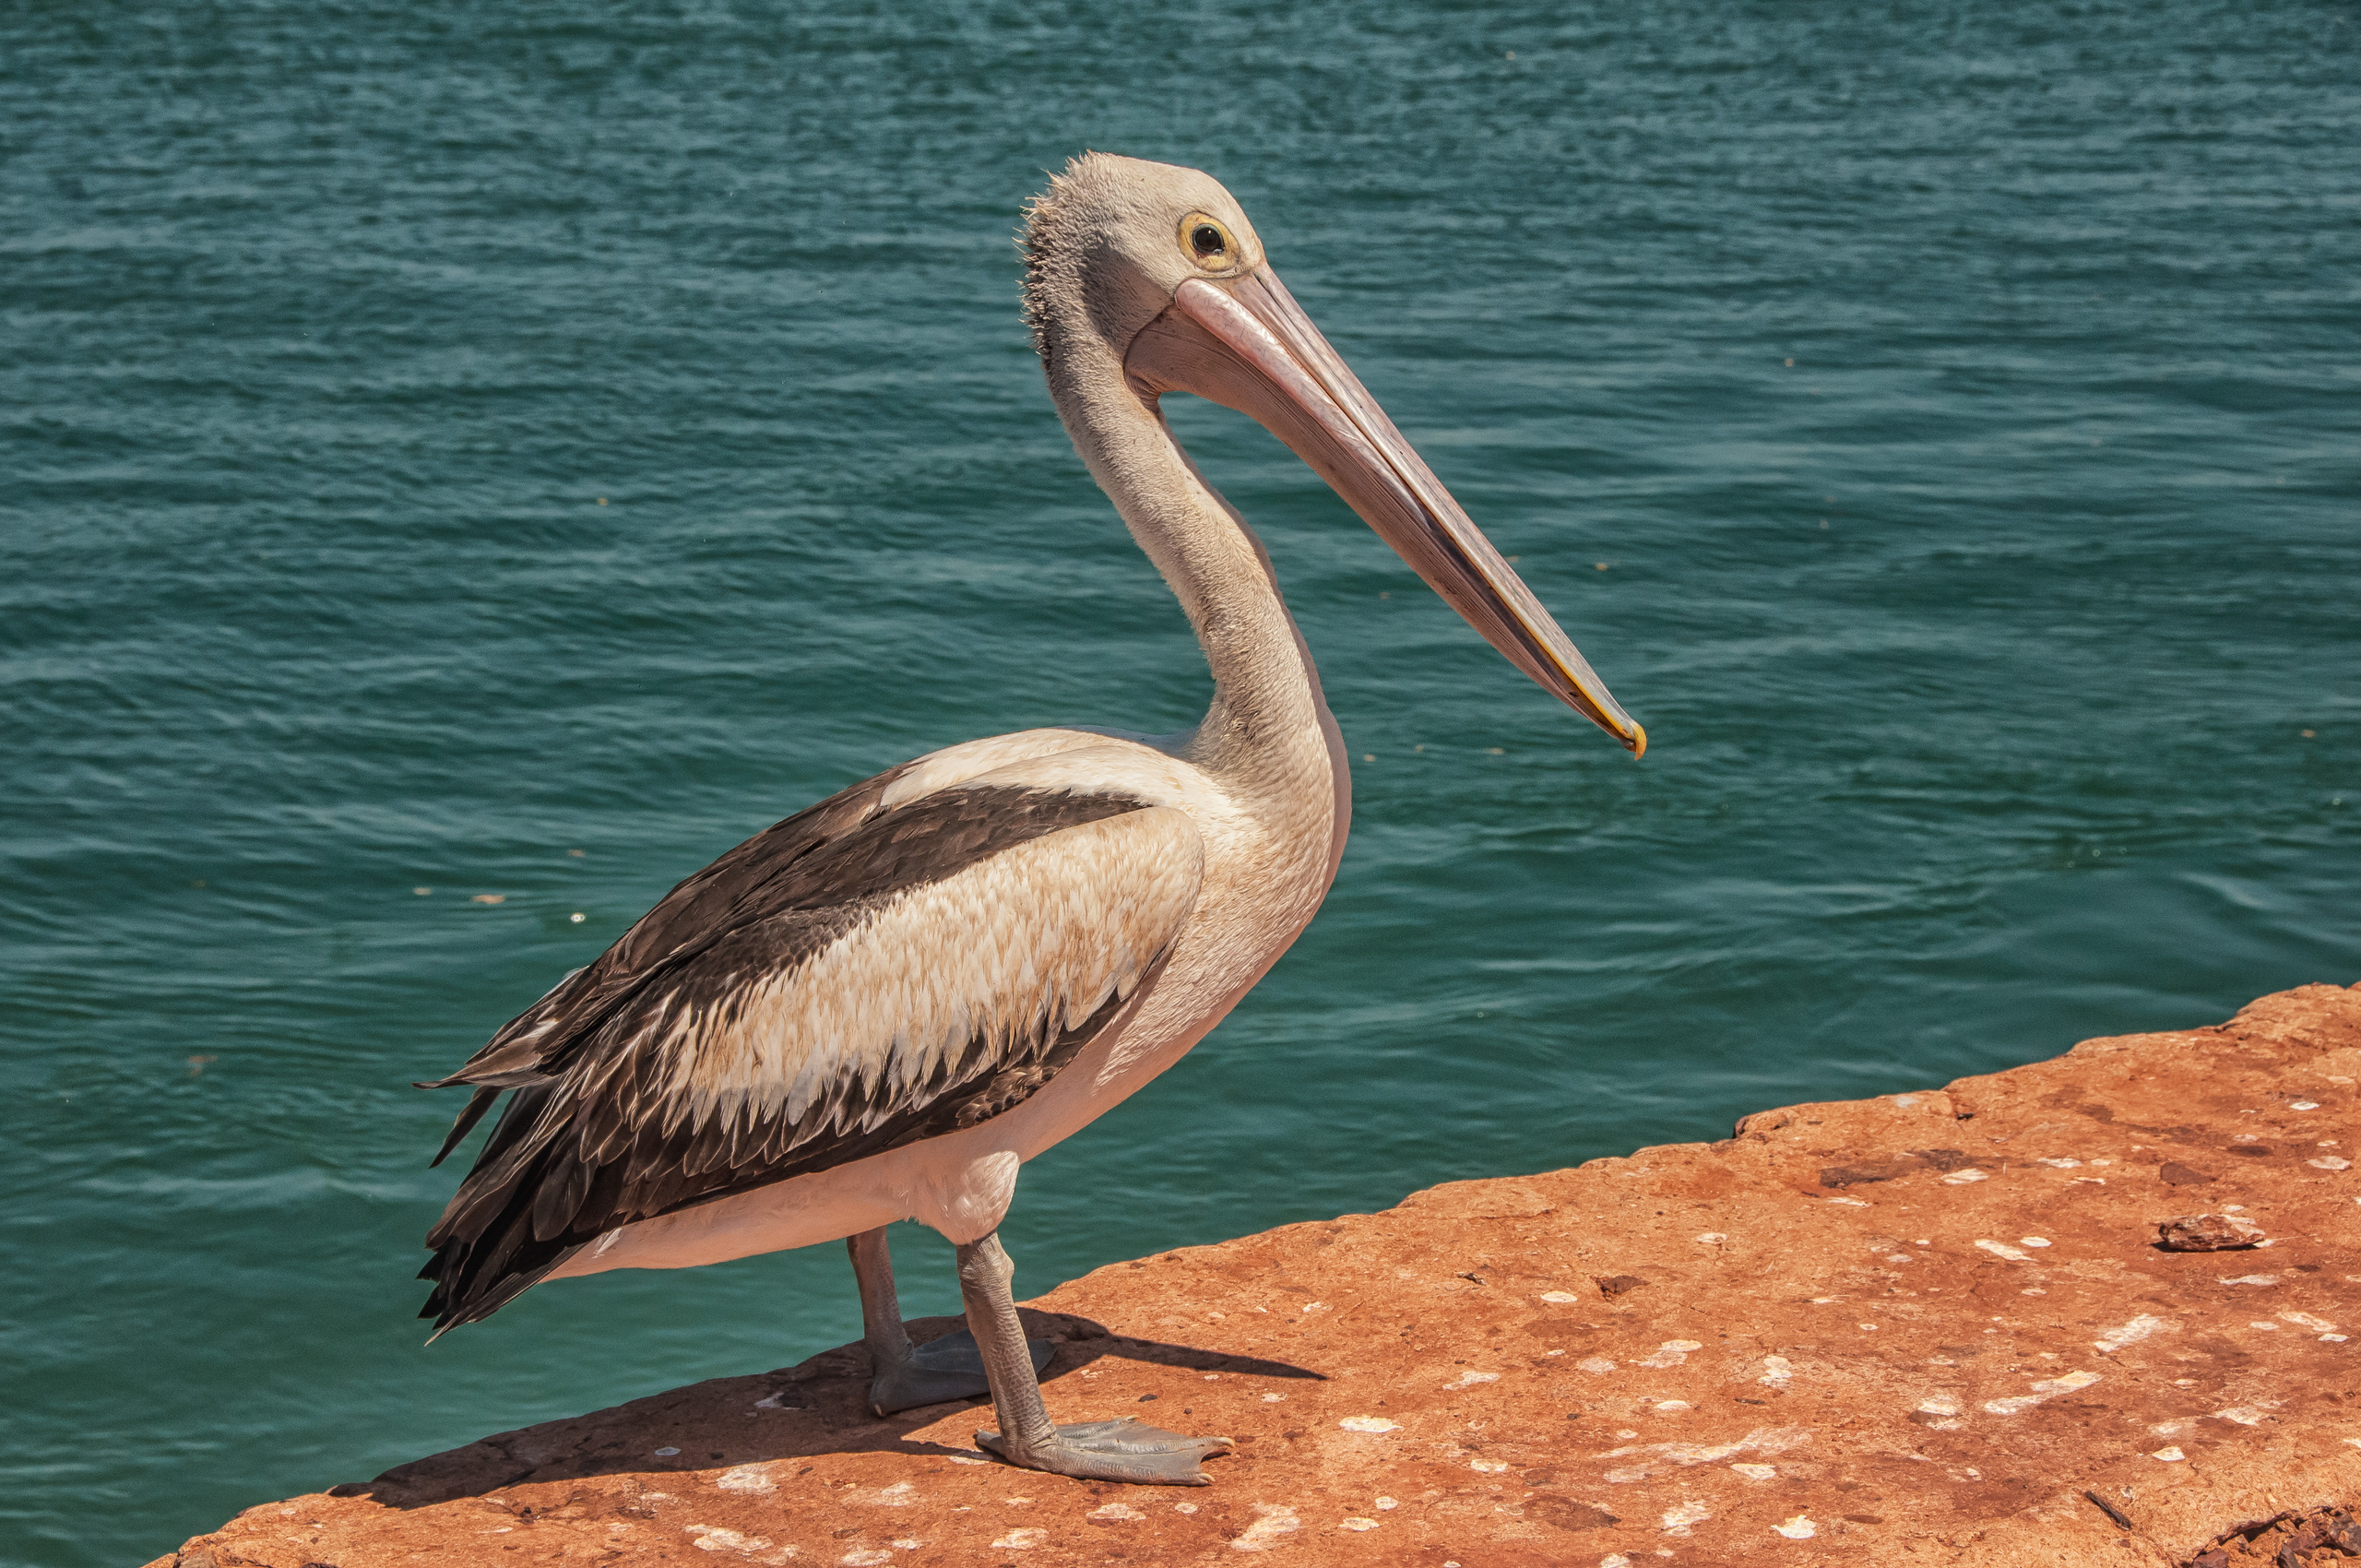 Pelican at Cossack wharf